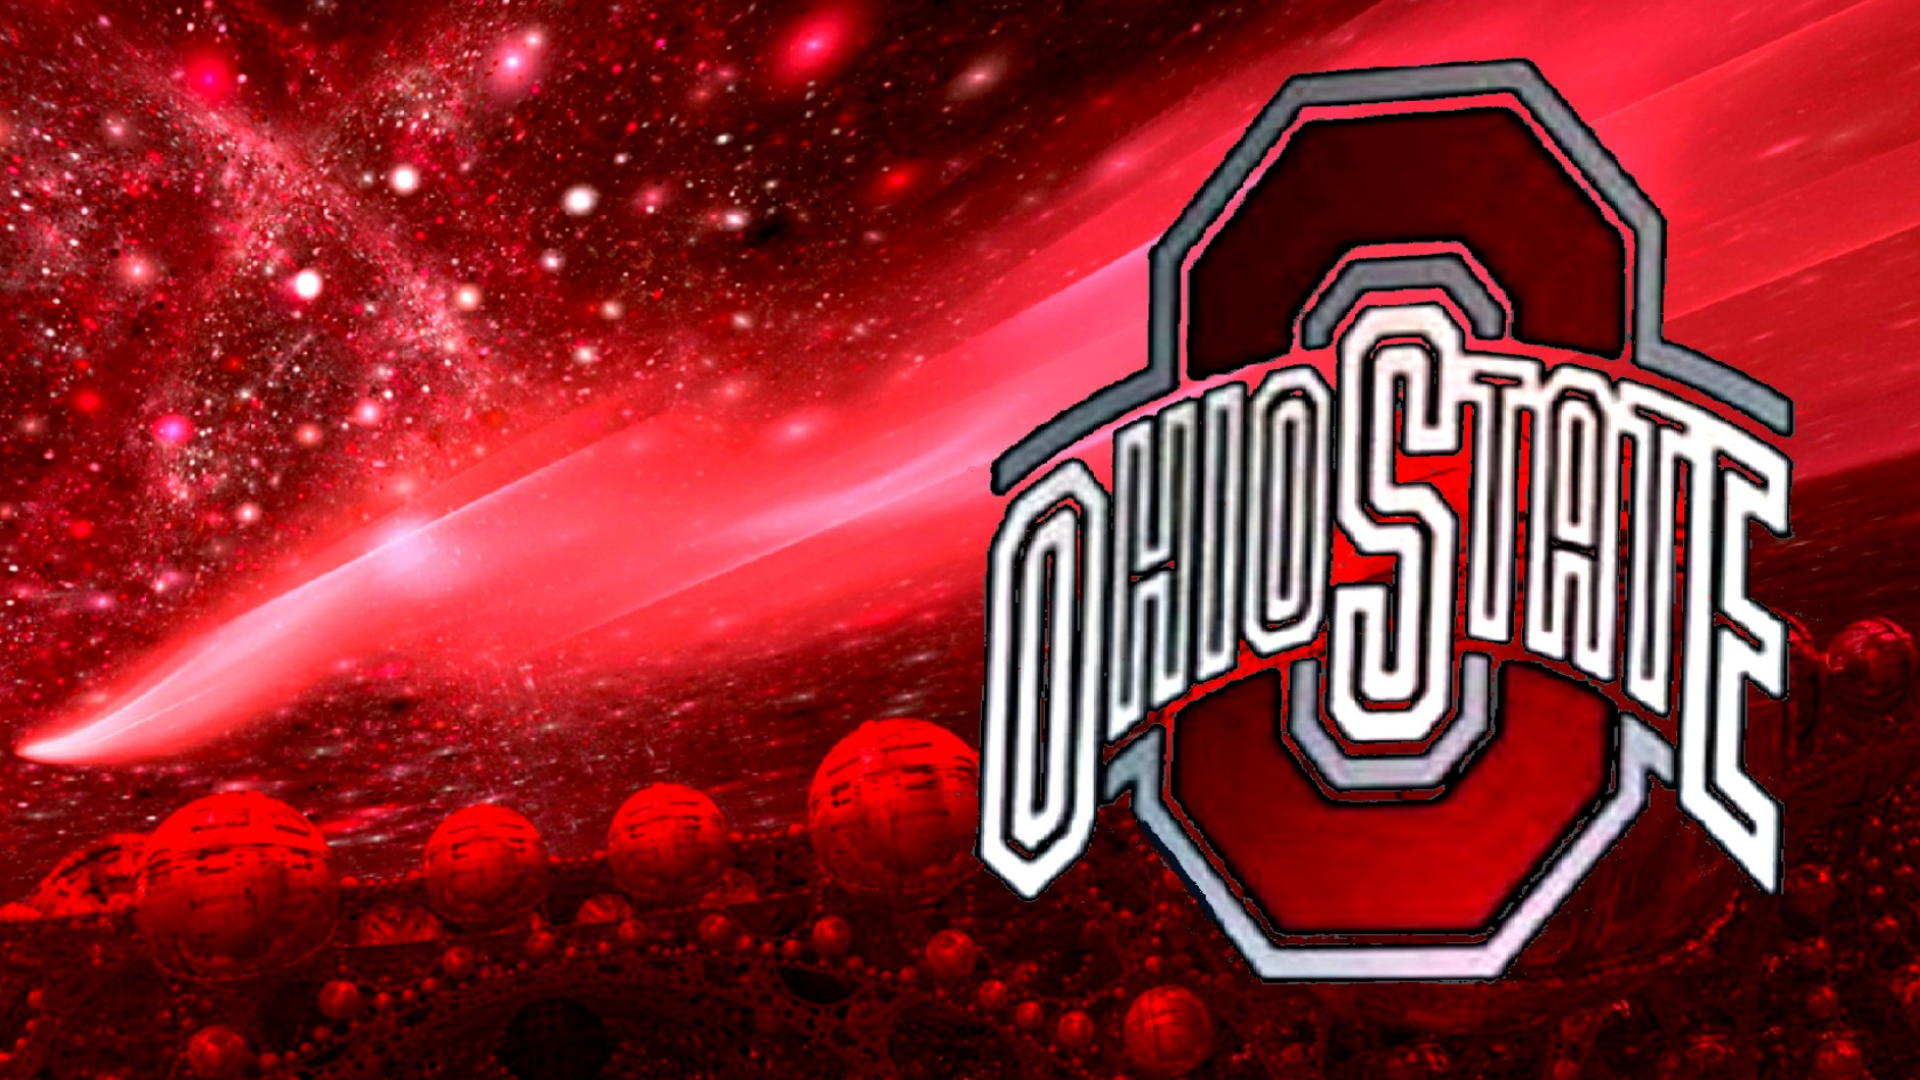 3D   Ohio State Football Desktop and mobile wallpaper Wallippo 1920x1080